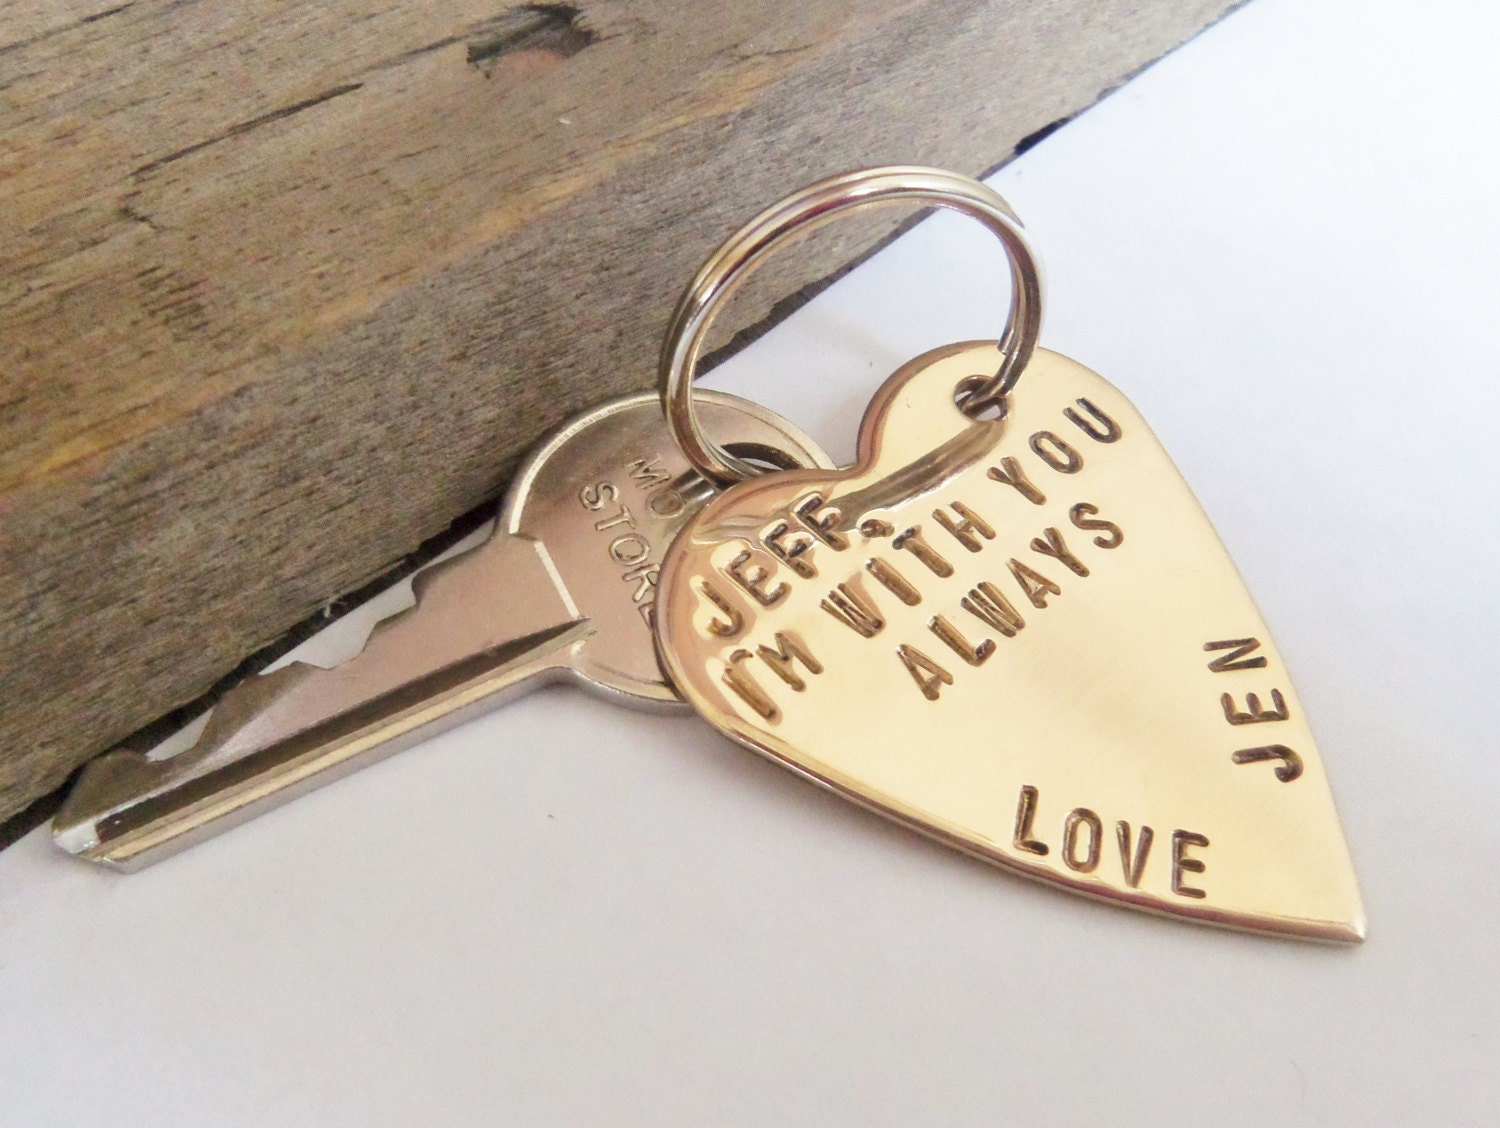 What To Engrave On Wedding Gift For Husband : Personalized Keychain for Boyfriend Gift for Husband Key Chain